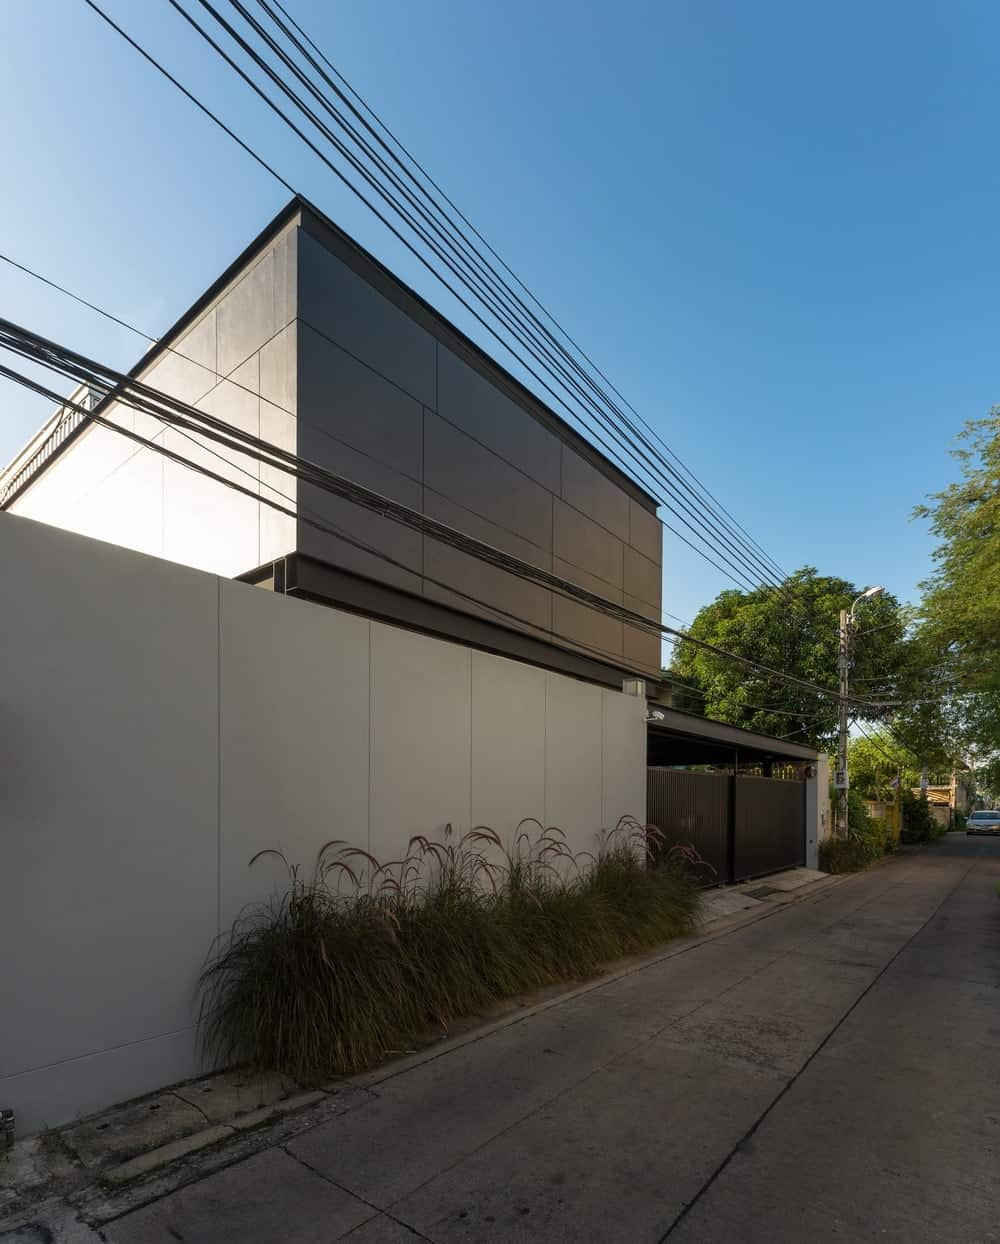 This is a front view of the house from the street showcasing the modern tones and wall panels of the house adorned with a row of shrubs on the side of the bright concrete wall by the entrance.